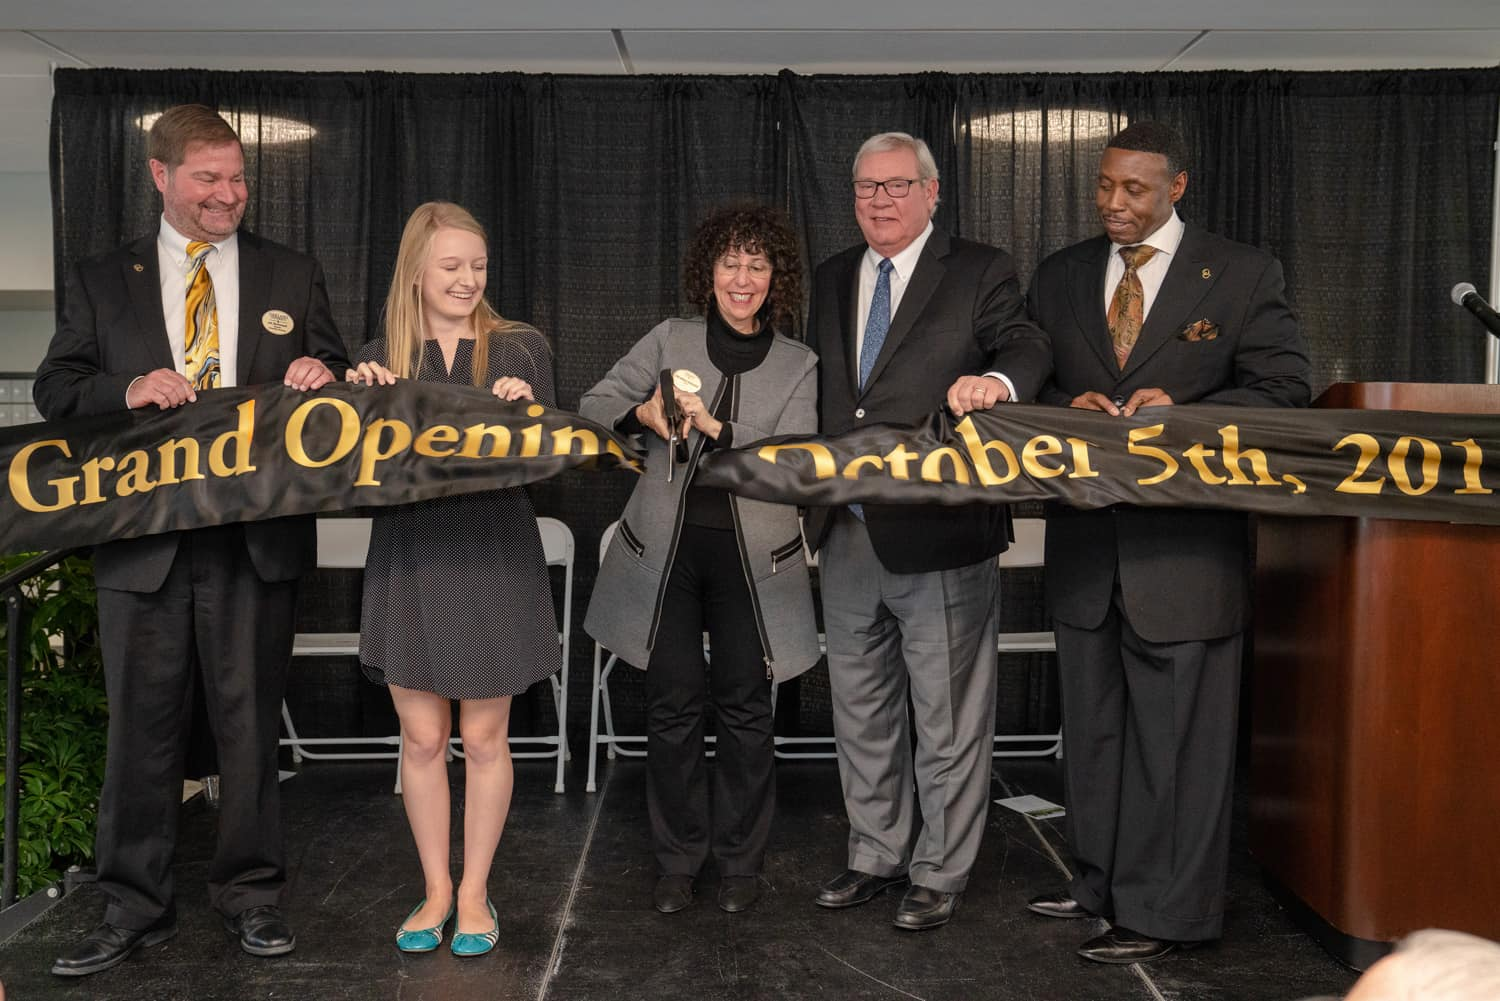 Oakland University president Ora Hirsch Pescovitz cutting ribbon during Hillcrest Hall grand opening.